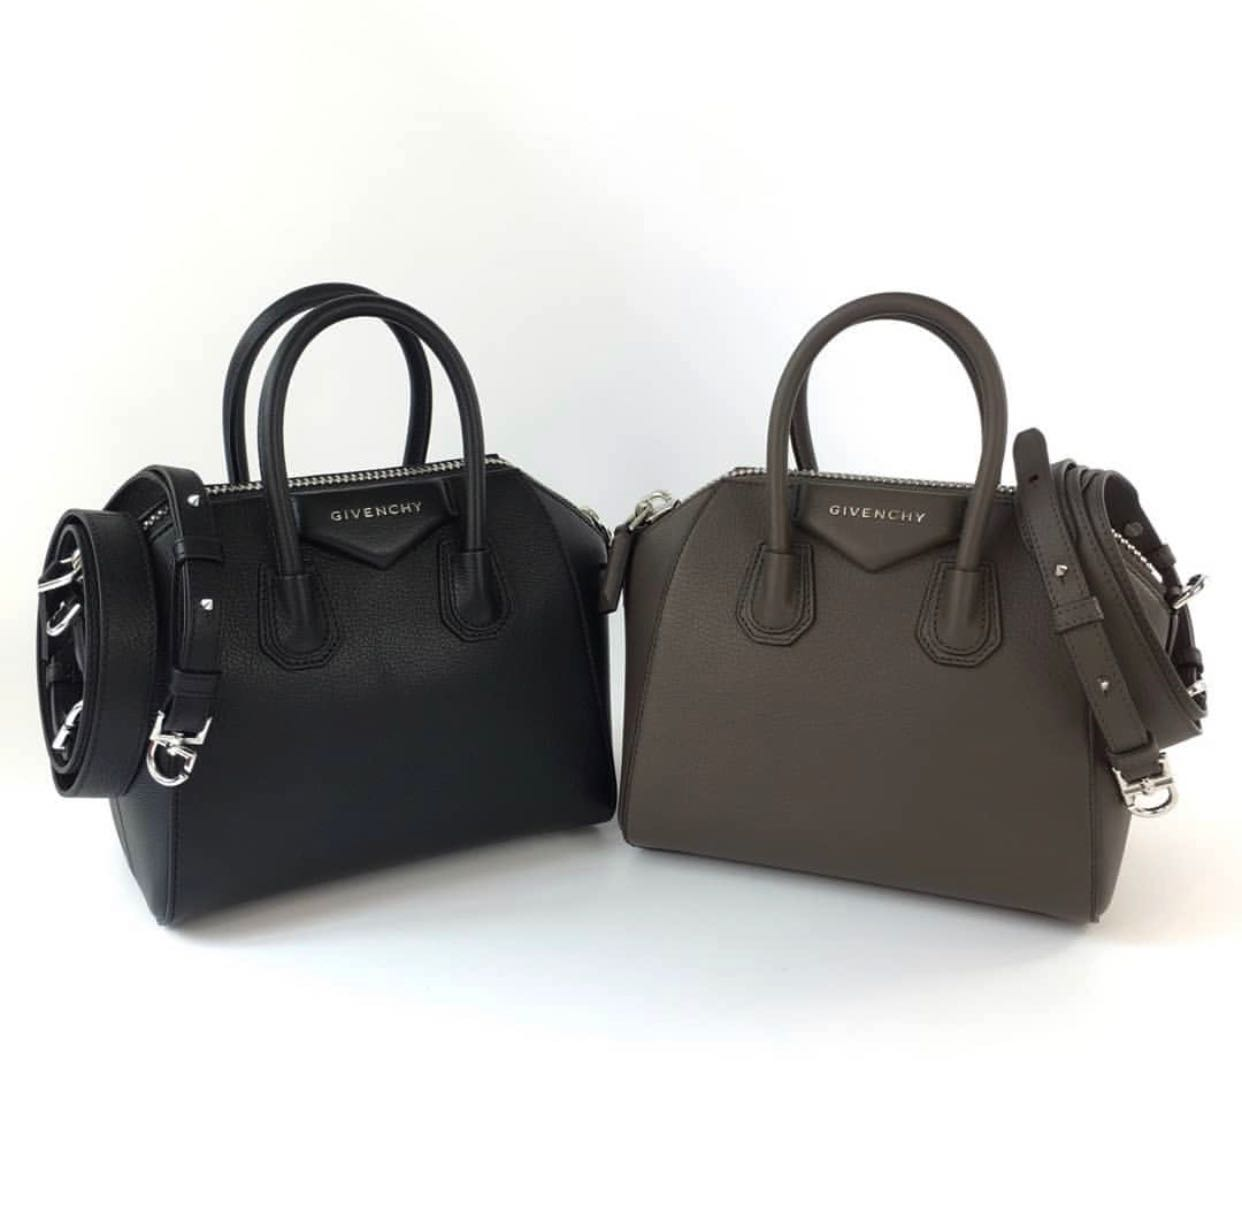 ff79f4a044c32 Givenchy Antigona [SALE], Luxury, Bags & Wallets, Handbags on Carousell